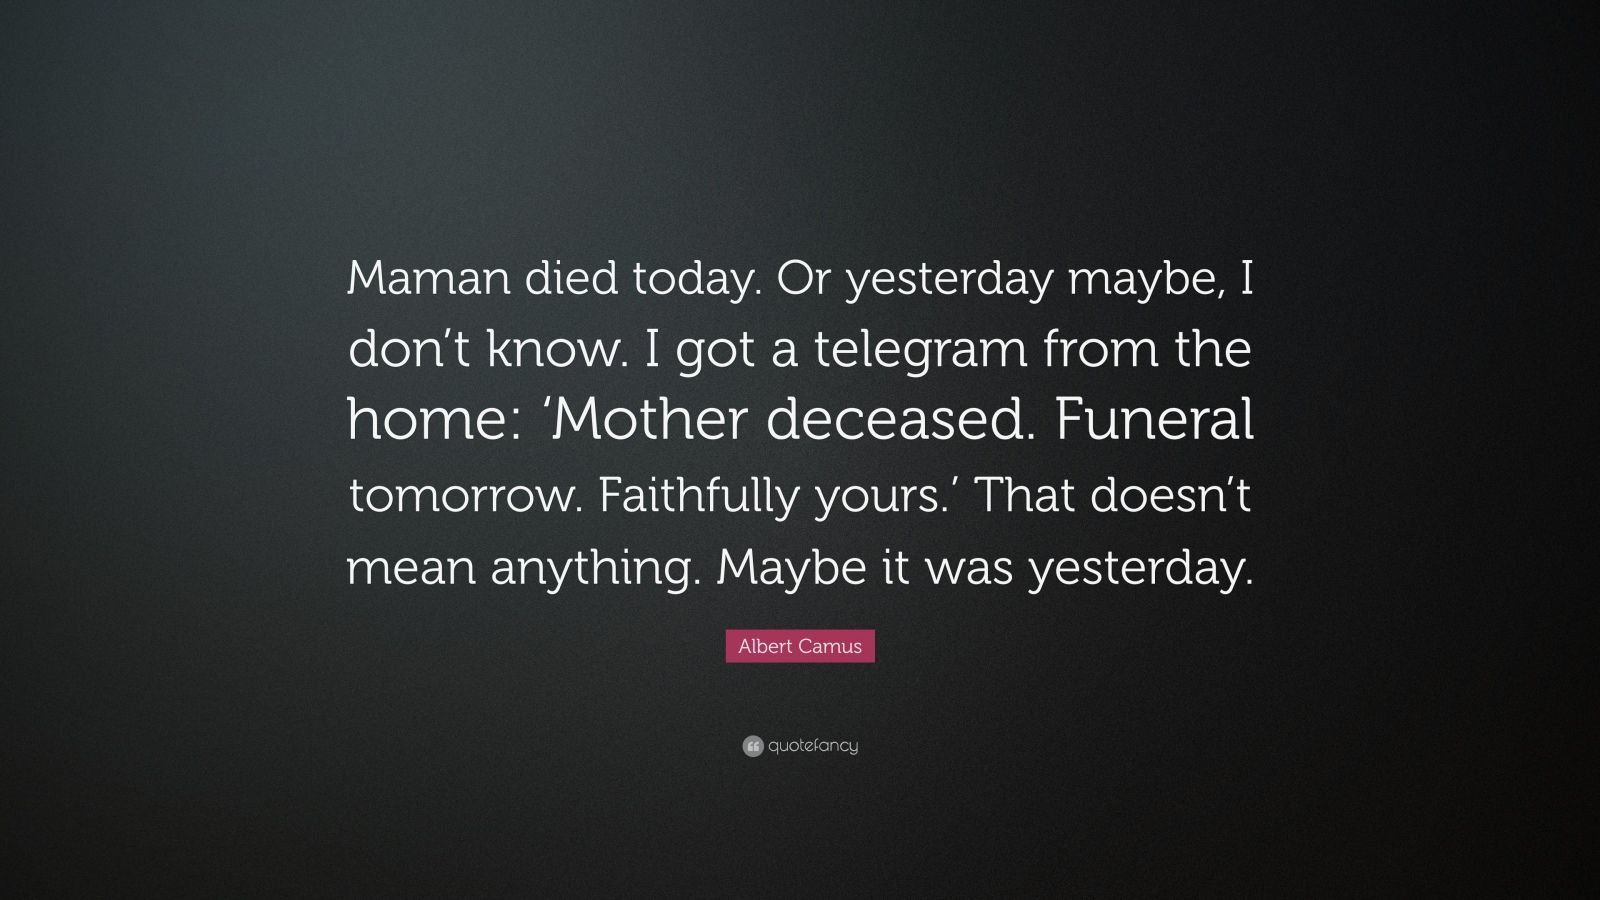 """Albert Camus Quote: """"Maman died today. Or yesterday maybe, I don't know. I got a telegram from the home: 'Mother deceased. Funeral tomorrow. Faithfully yours.' That doesn't mean anything. Maybe it was yesterday."""""""